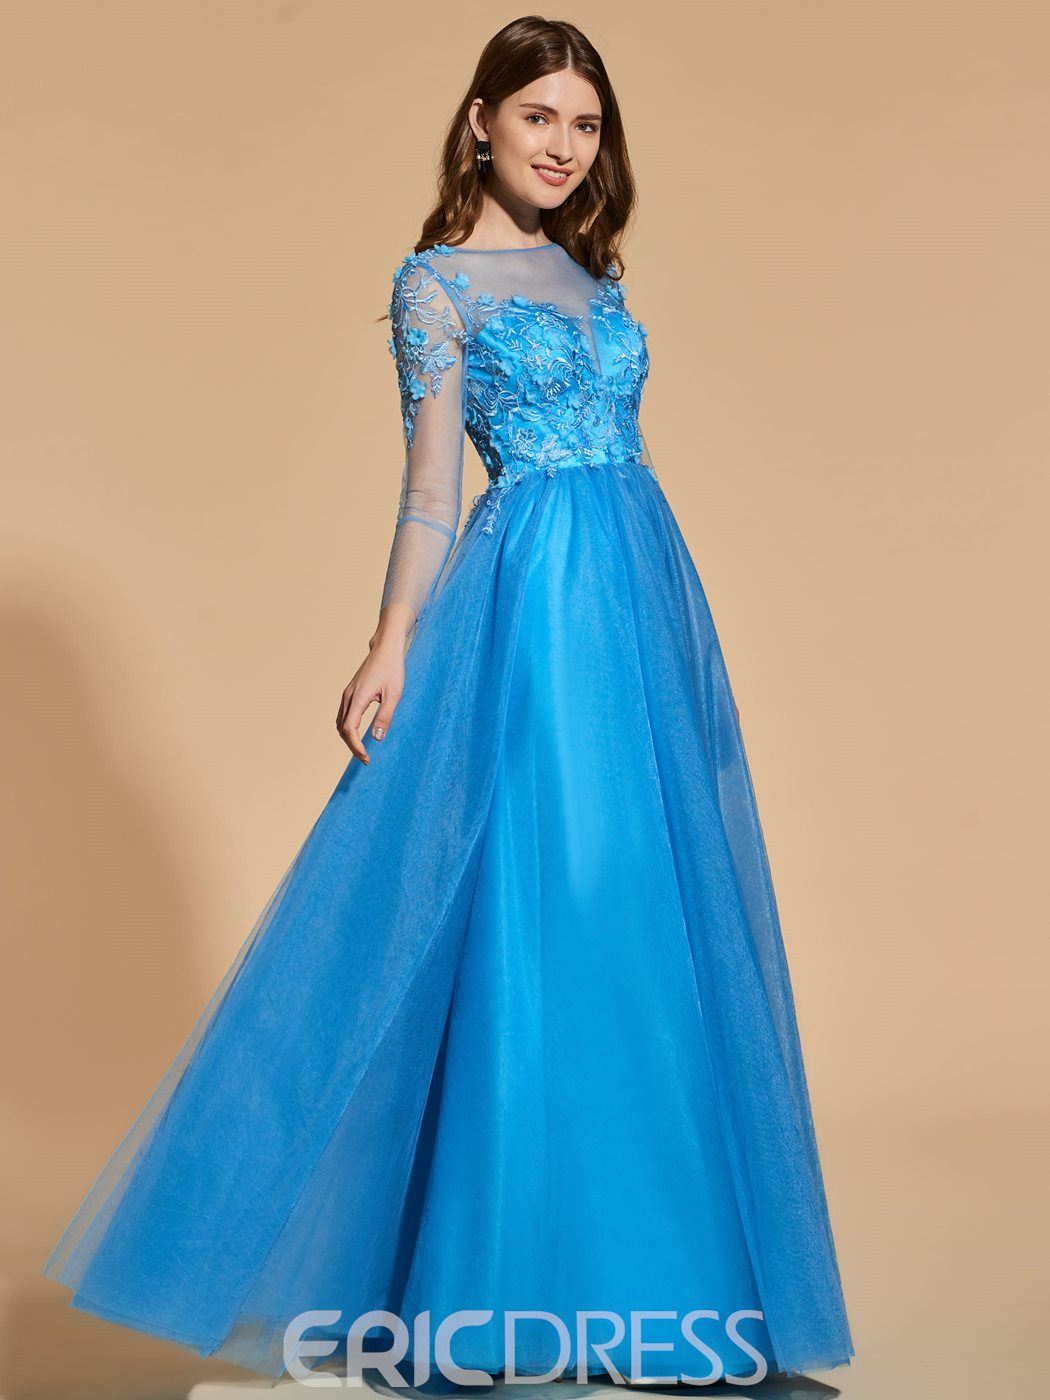 Ericdress A Line Applique Long Sleeve Prom Party Dress